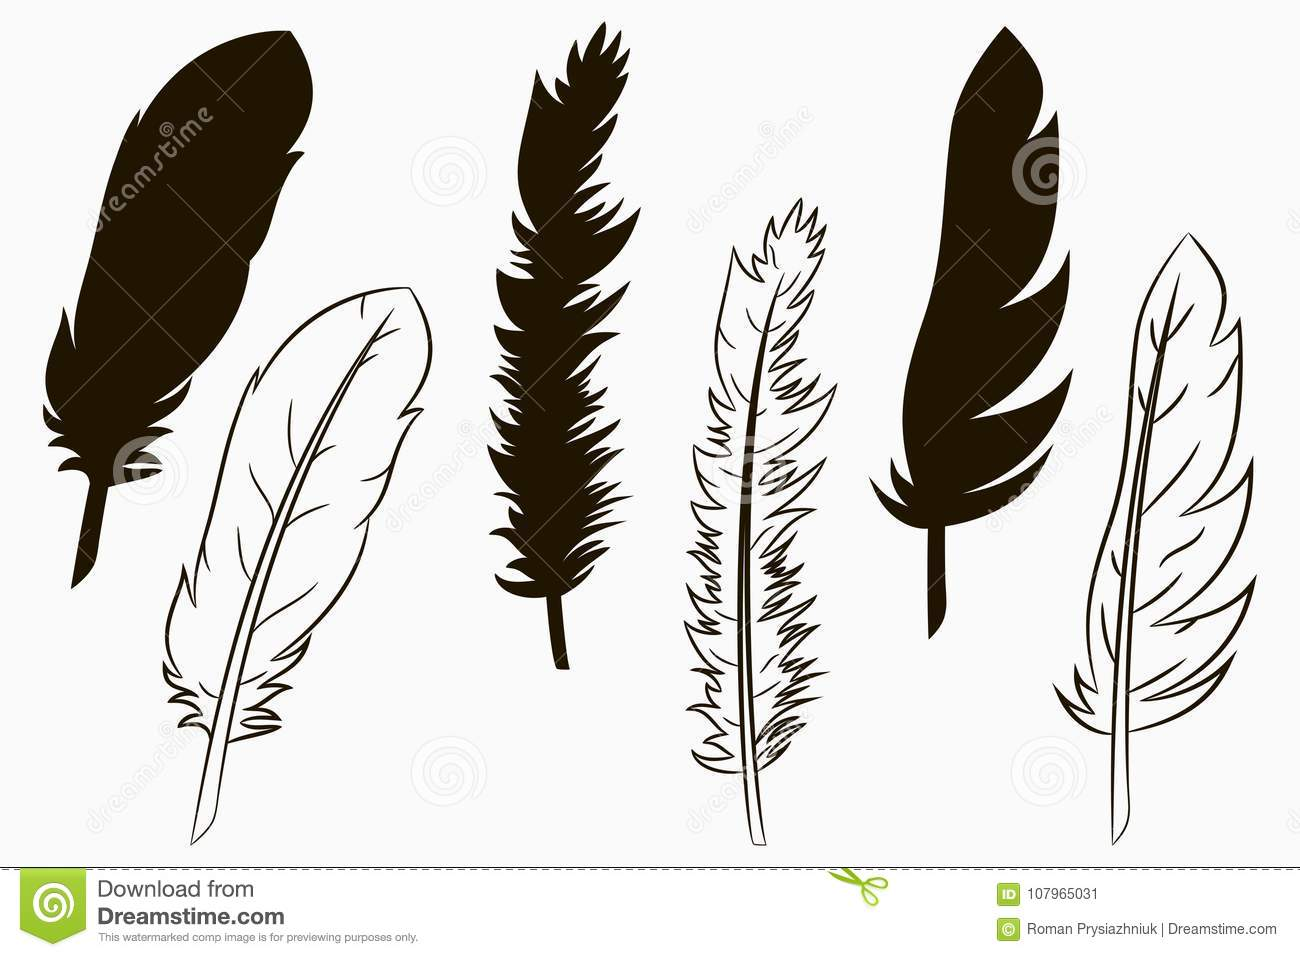 Feathers of birds. Set of silhouette and line drawn feather. Vector.